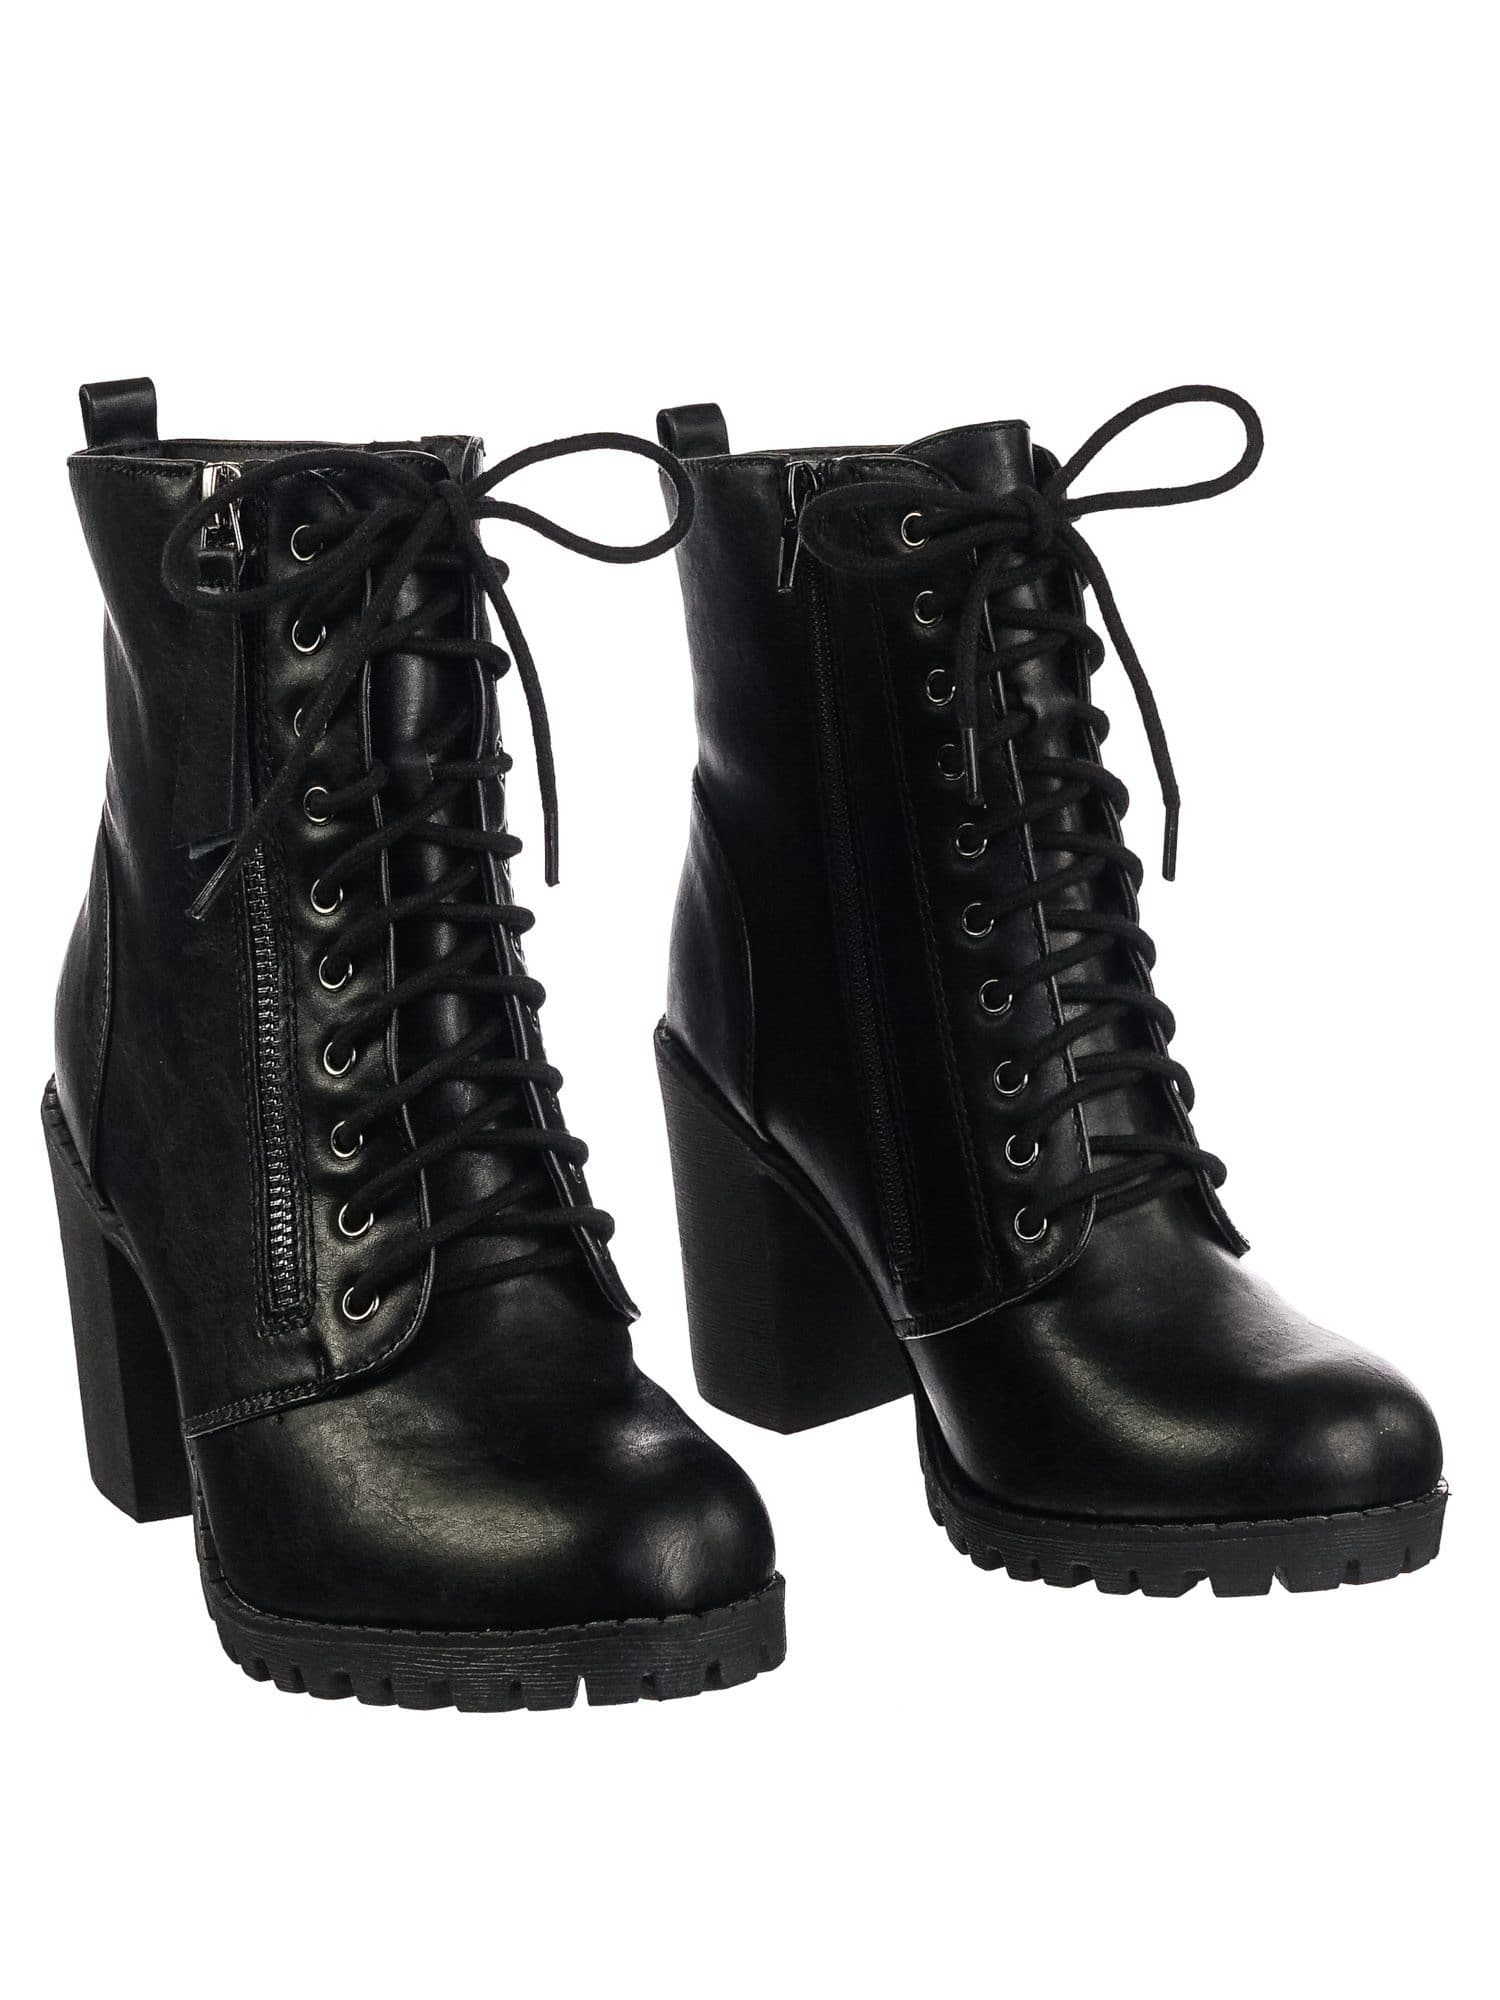 Malia BlackPu Military Lace Up Combat Ankle Boot On Chunky Block Heel Lug Sole Bootie